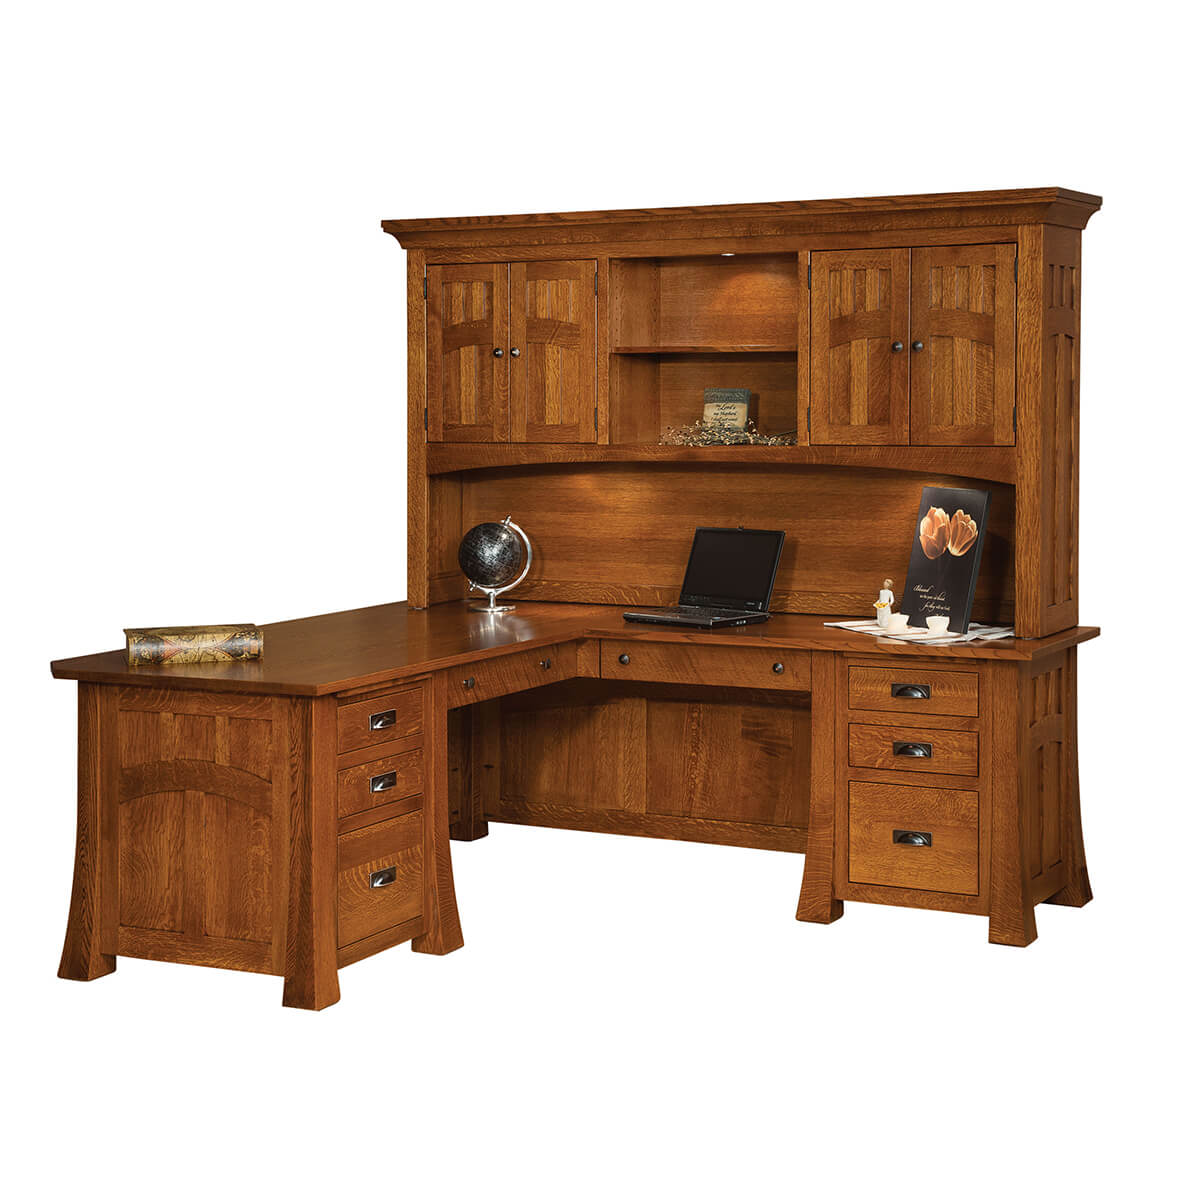 Office Furniture Us: E-Town Amish Furniture - Glendale, KY